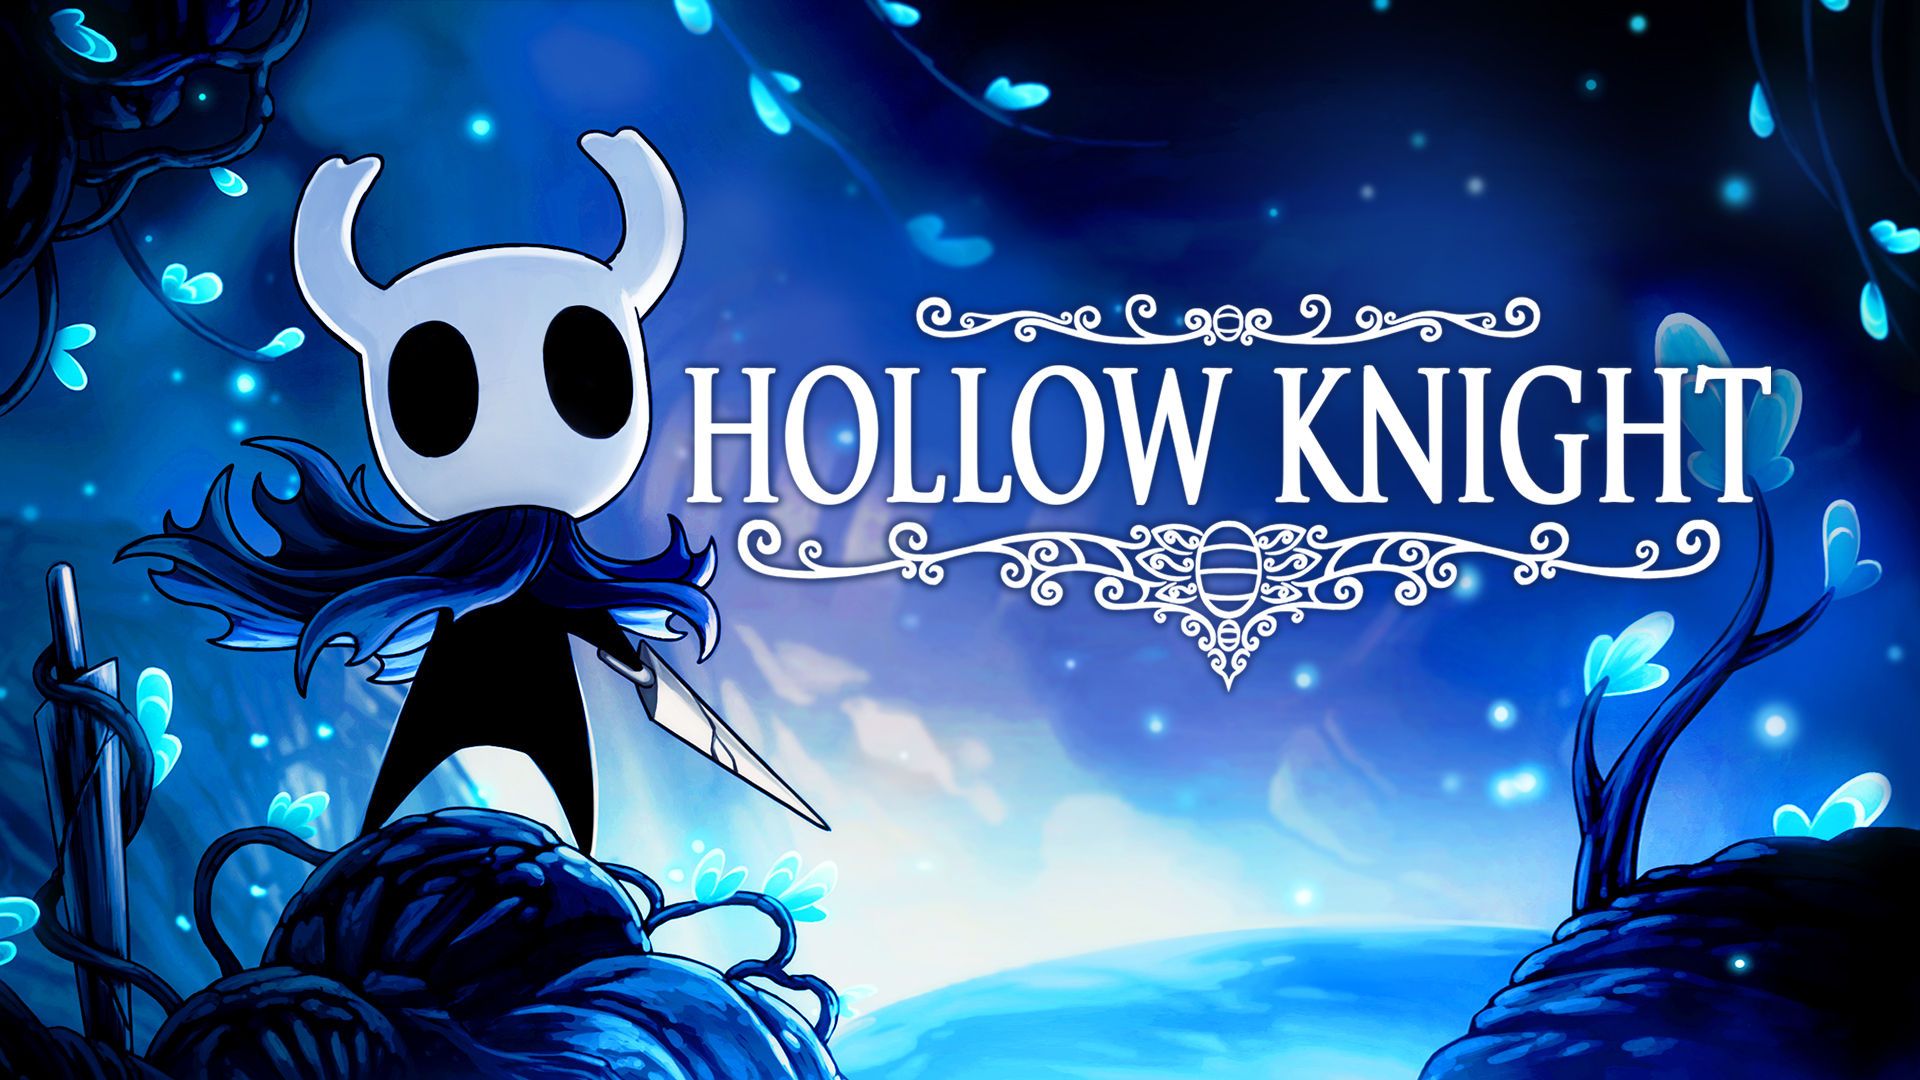 Hollow Knight, Games on Steam